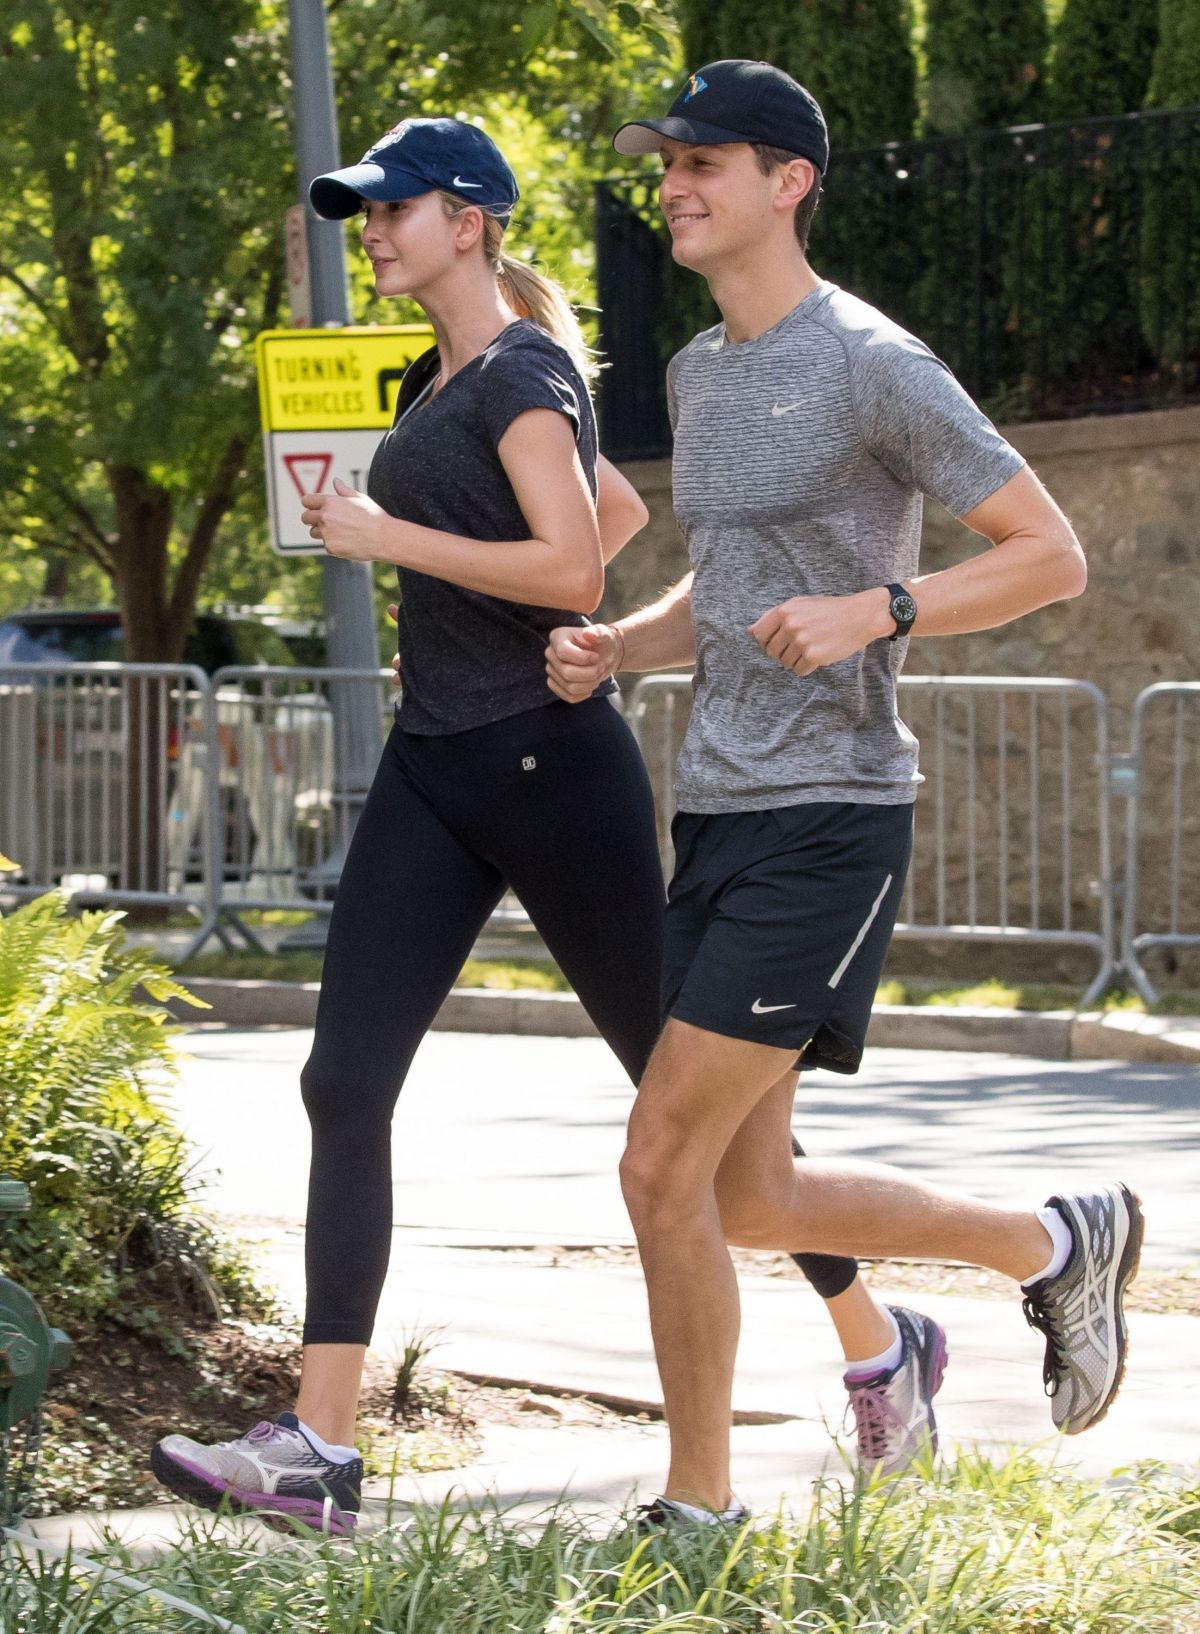 IVANKA TRUMP and Jared Kushner Out Jogging in Washington 06/25/2017